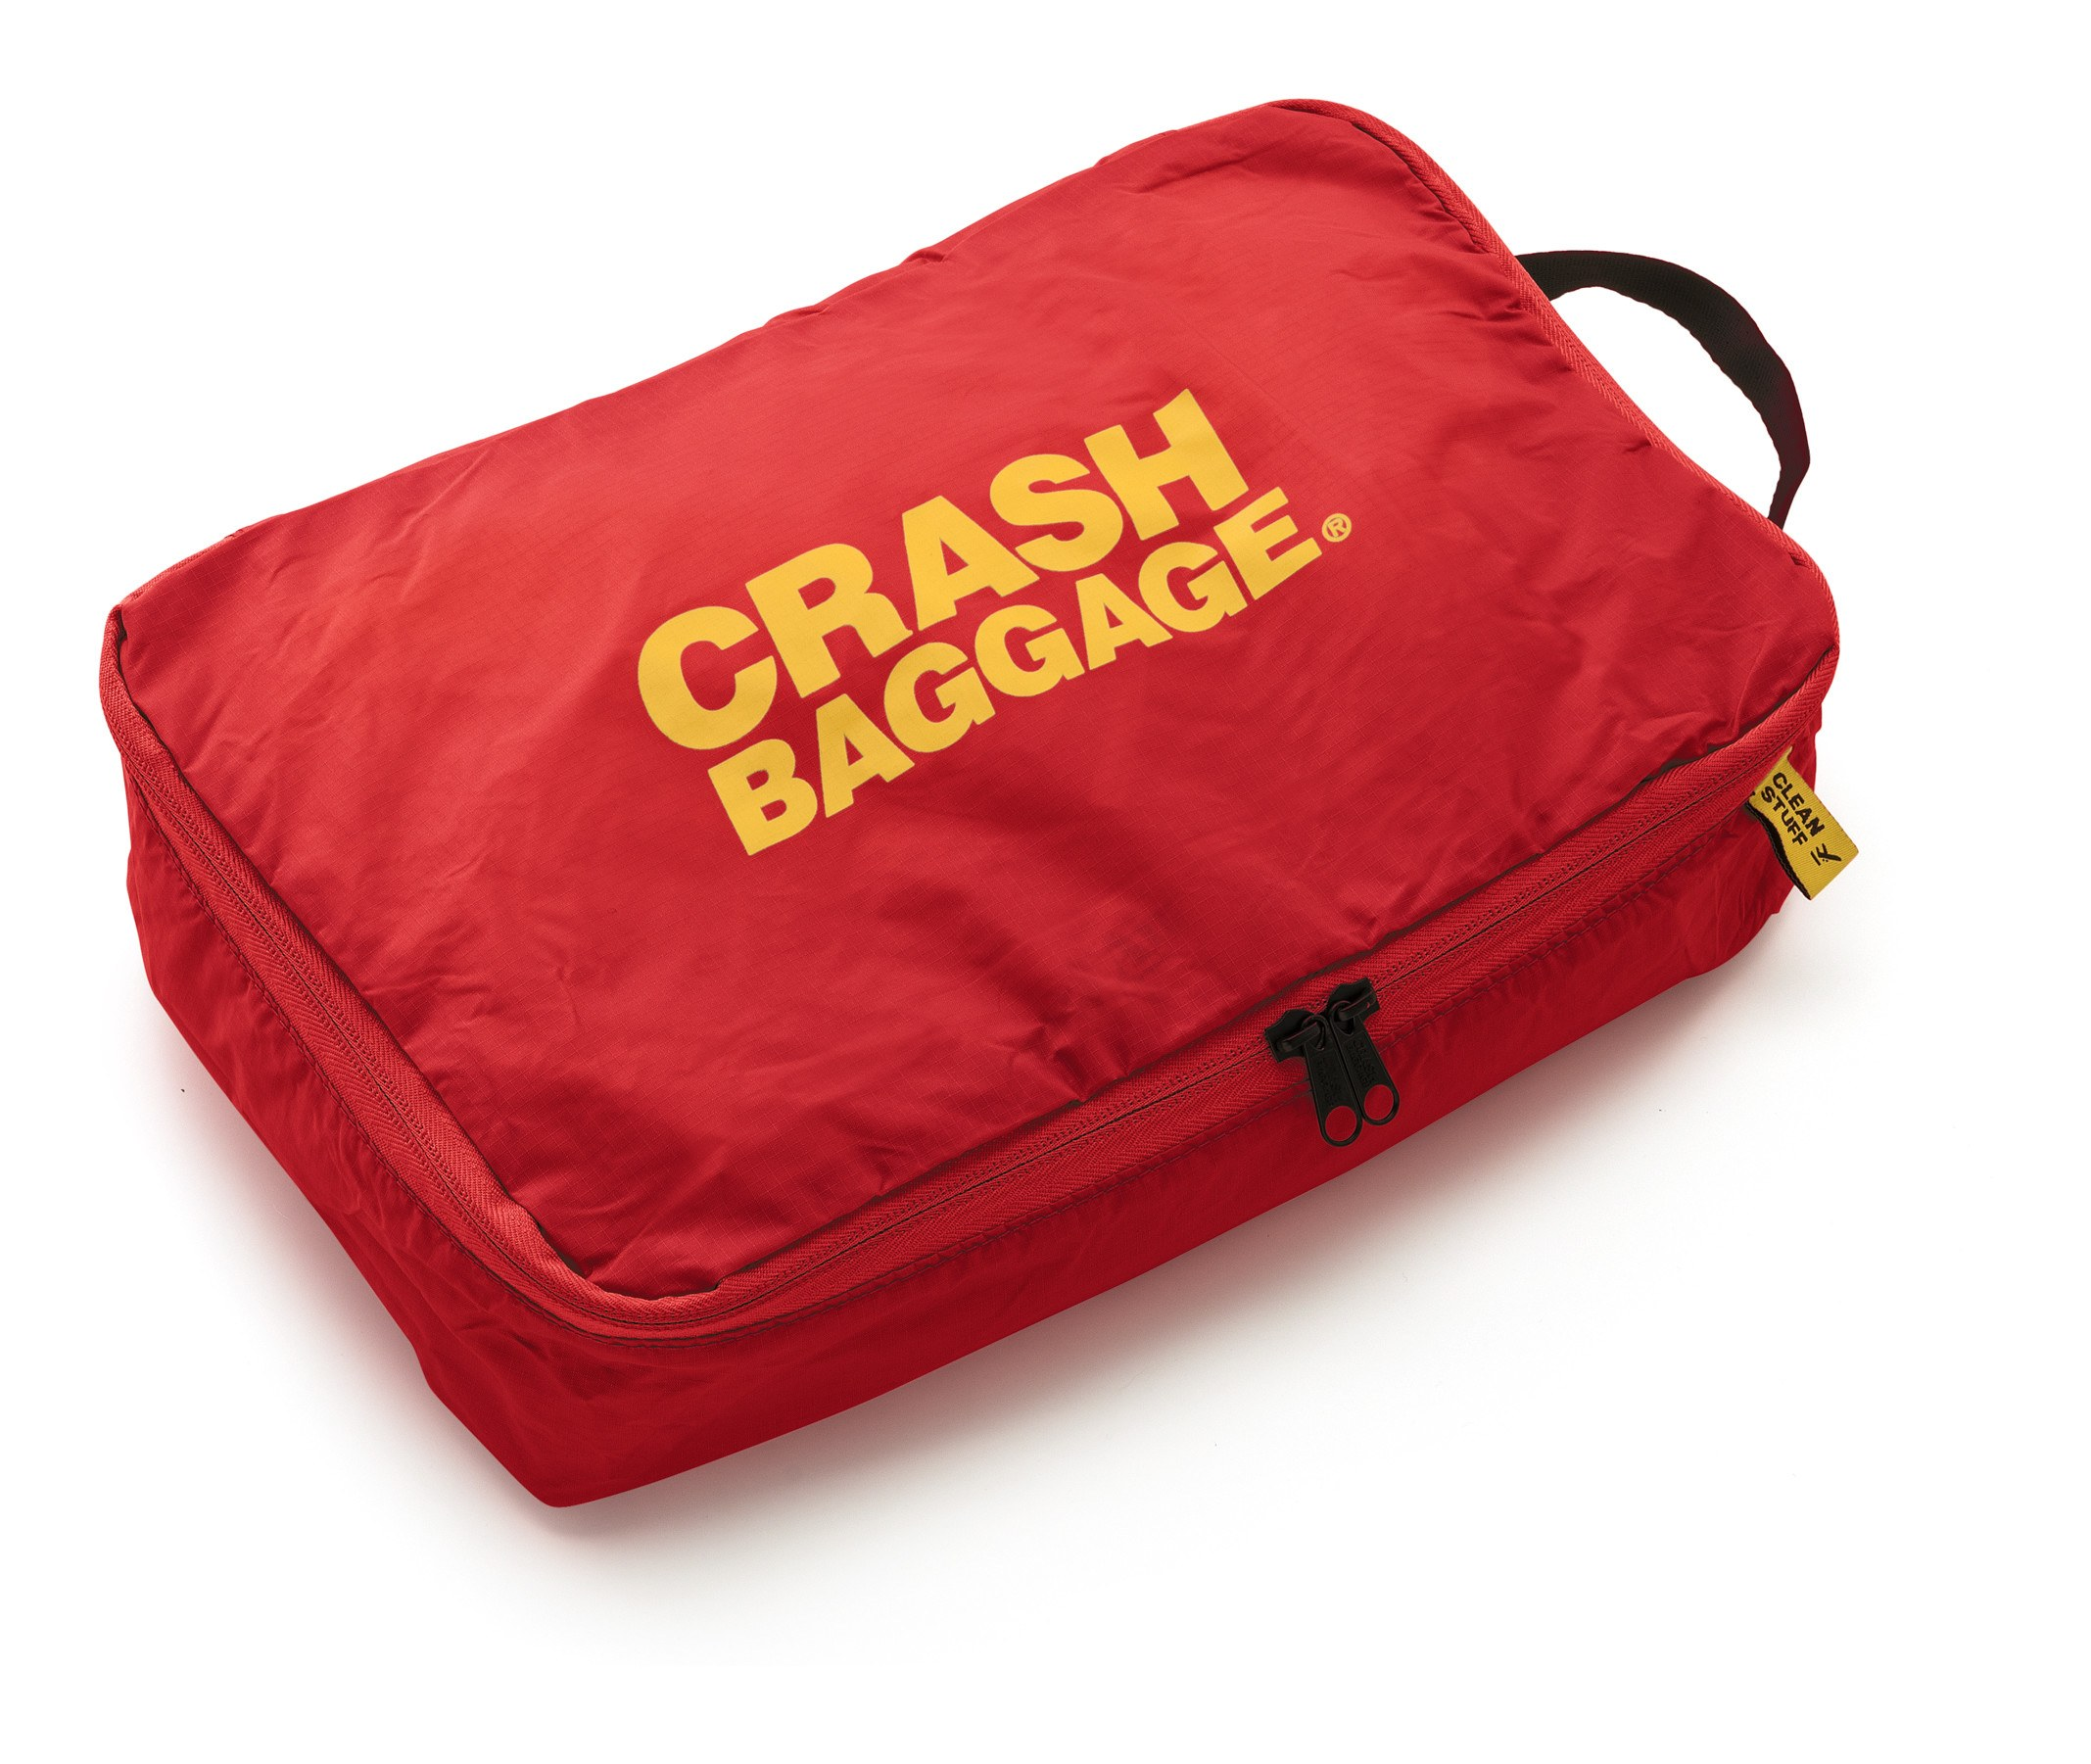 Organizer Crash Baggage średni Crab Red - 55618